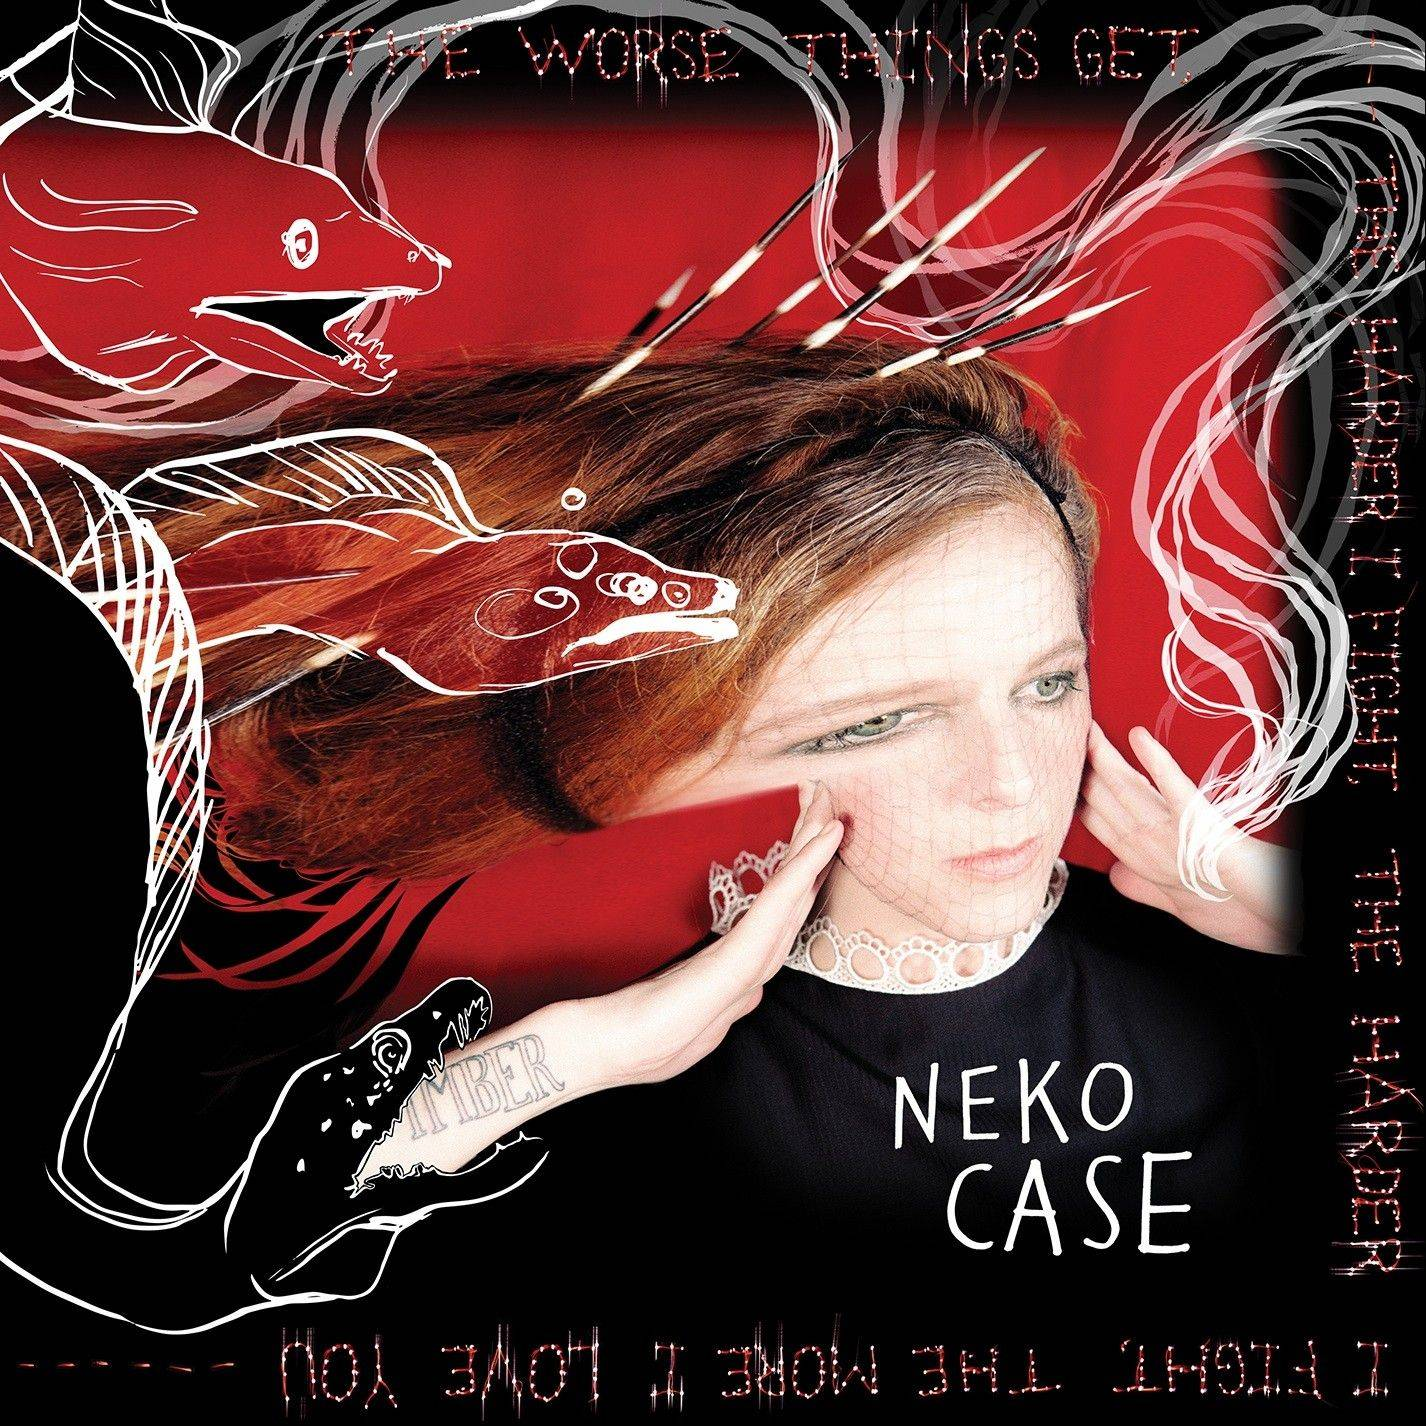 """The Worse Things Get, The Harder I Fight, The Harder I Fight, The More I Love You"" by Neko Case"